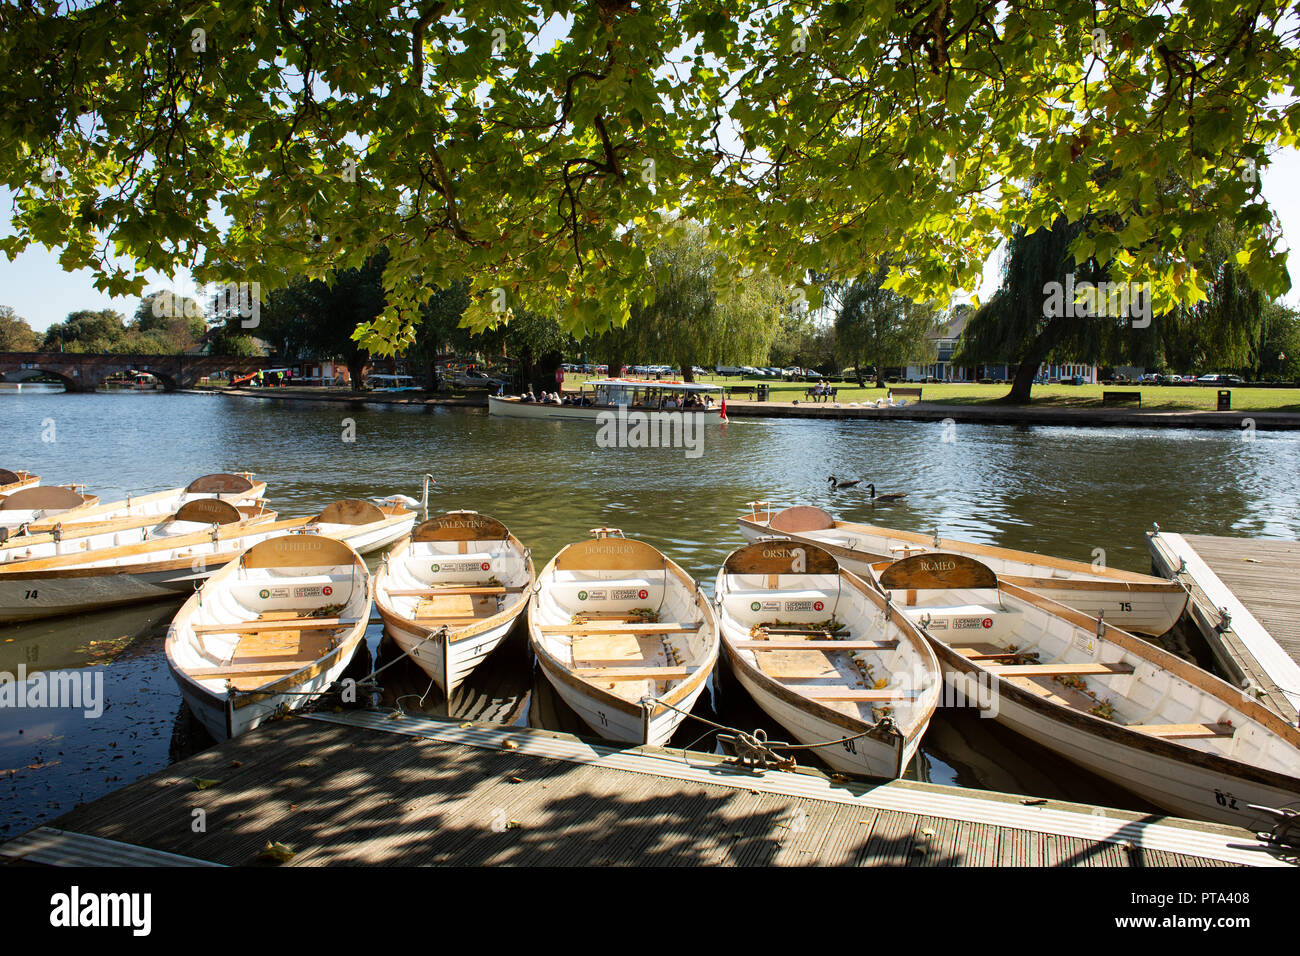 Rowing boats moored on the River Avon outside the Shakespeare Theatre. The boats are named after Shakespeare characters. - Stock Image